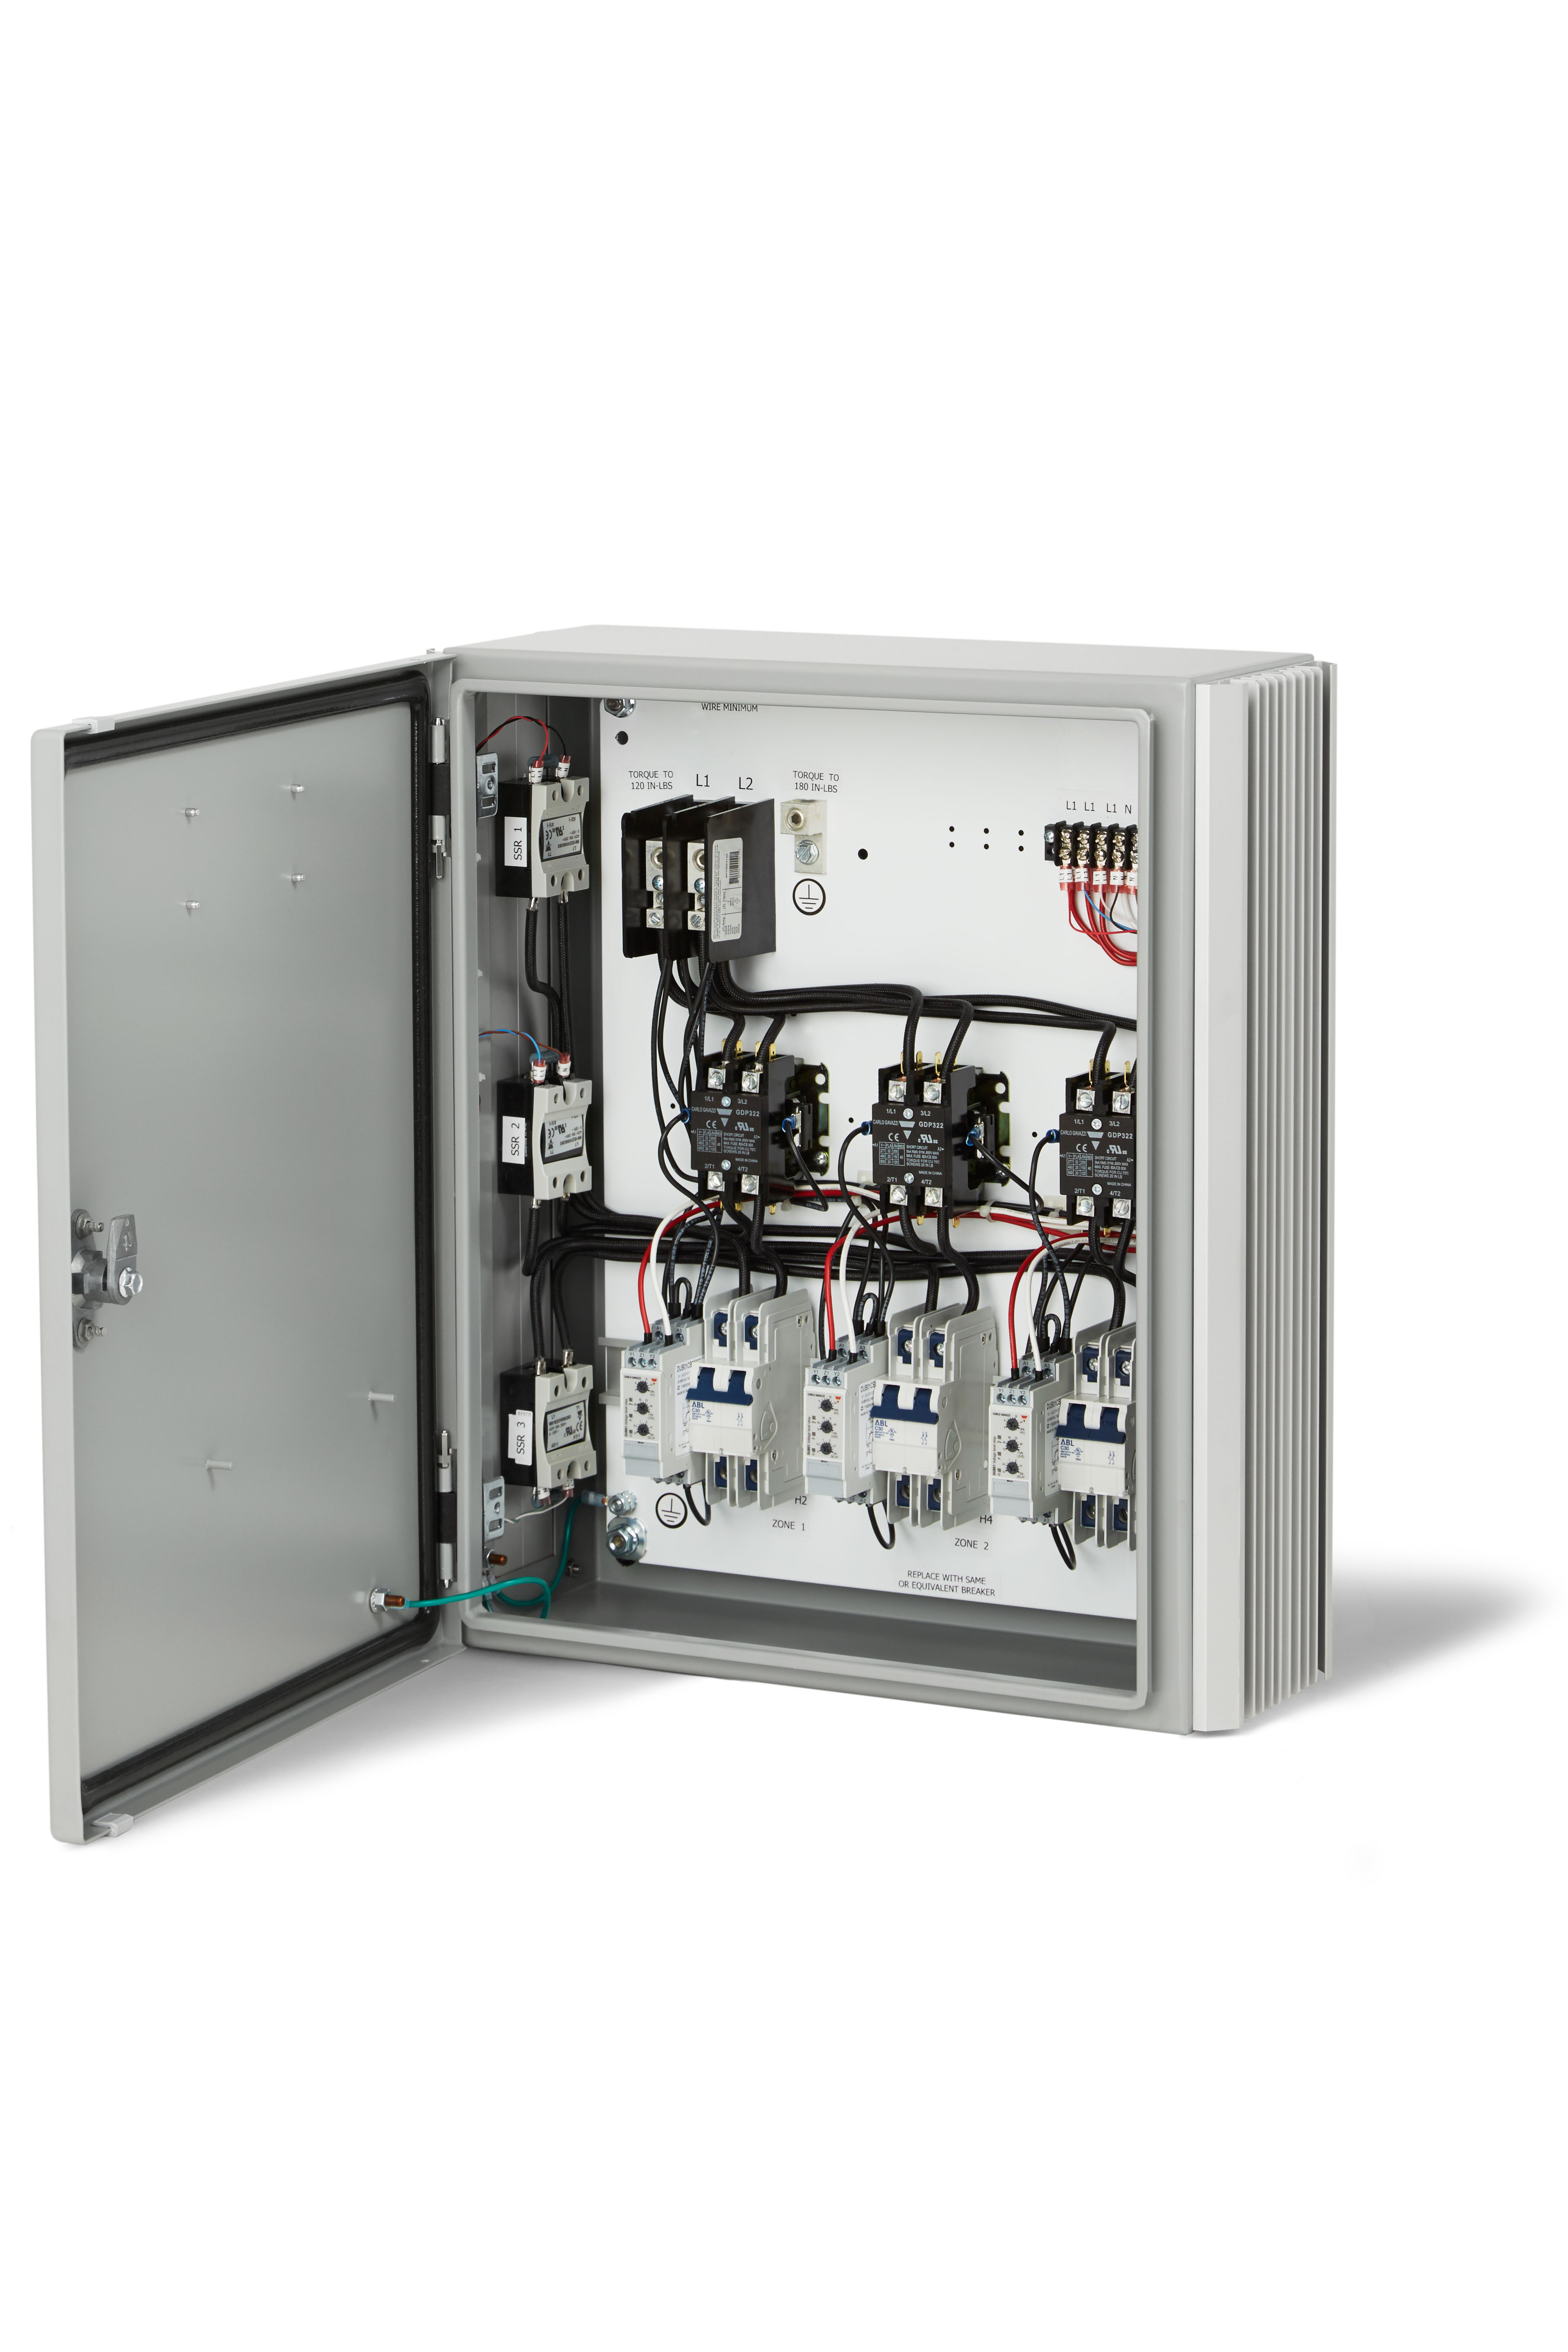 Controls Images Infratech Official Site Solid State Relay Dimmer Timer